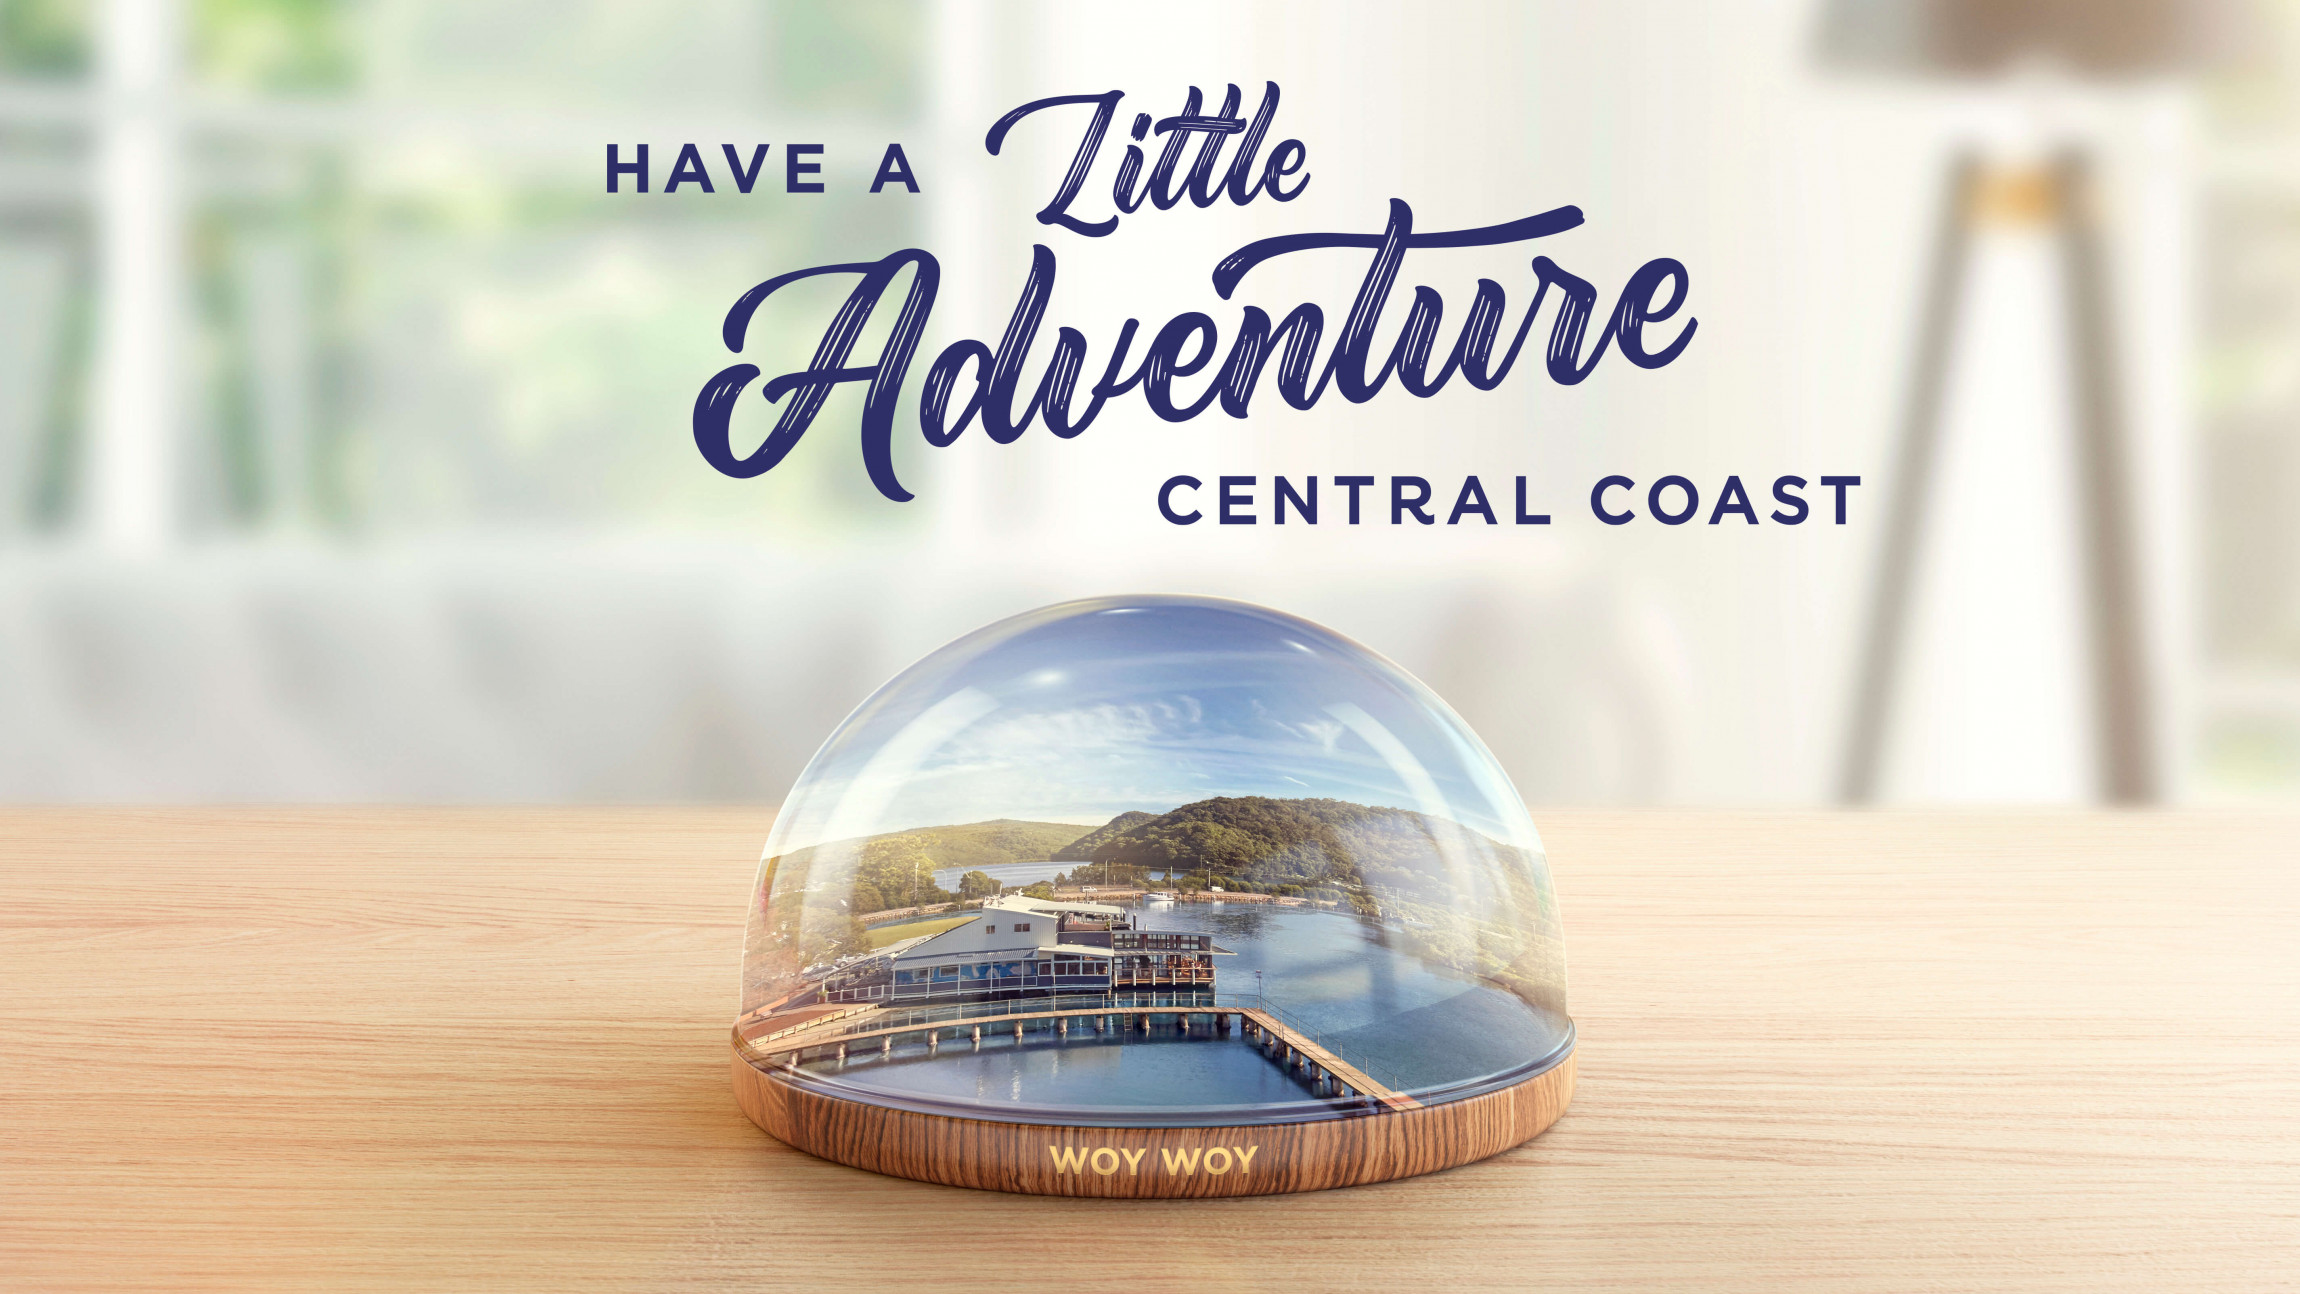 AFFINITY's 'Couch to Coast' campaign for Central Coast wins Silver in global WARC Media Awards